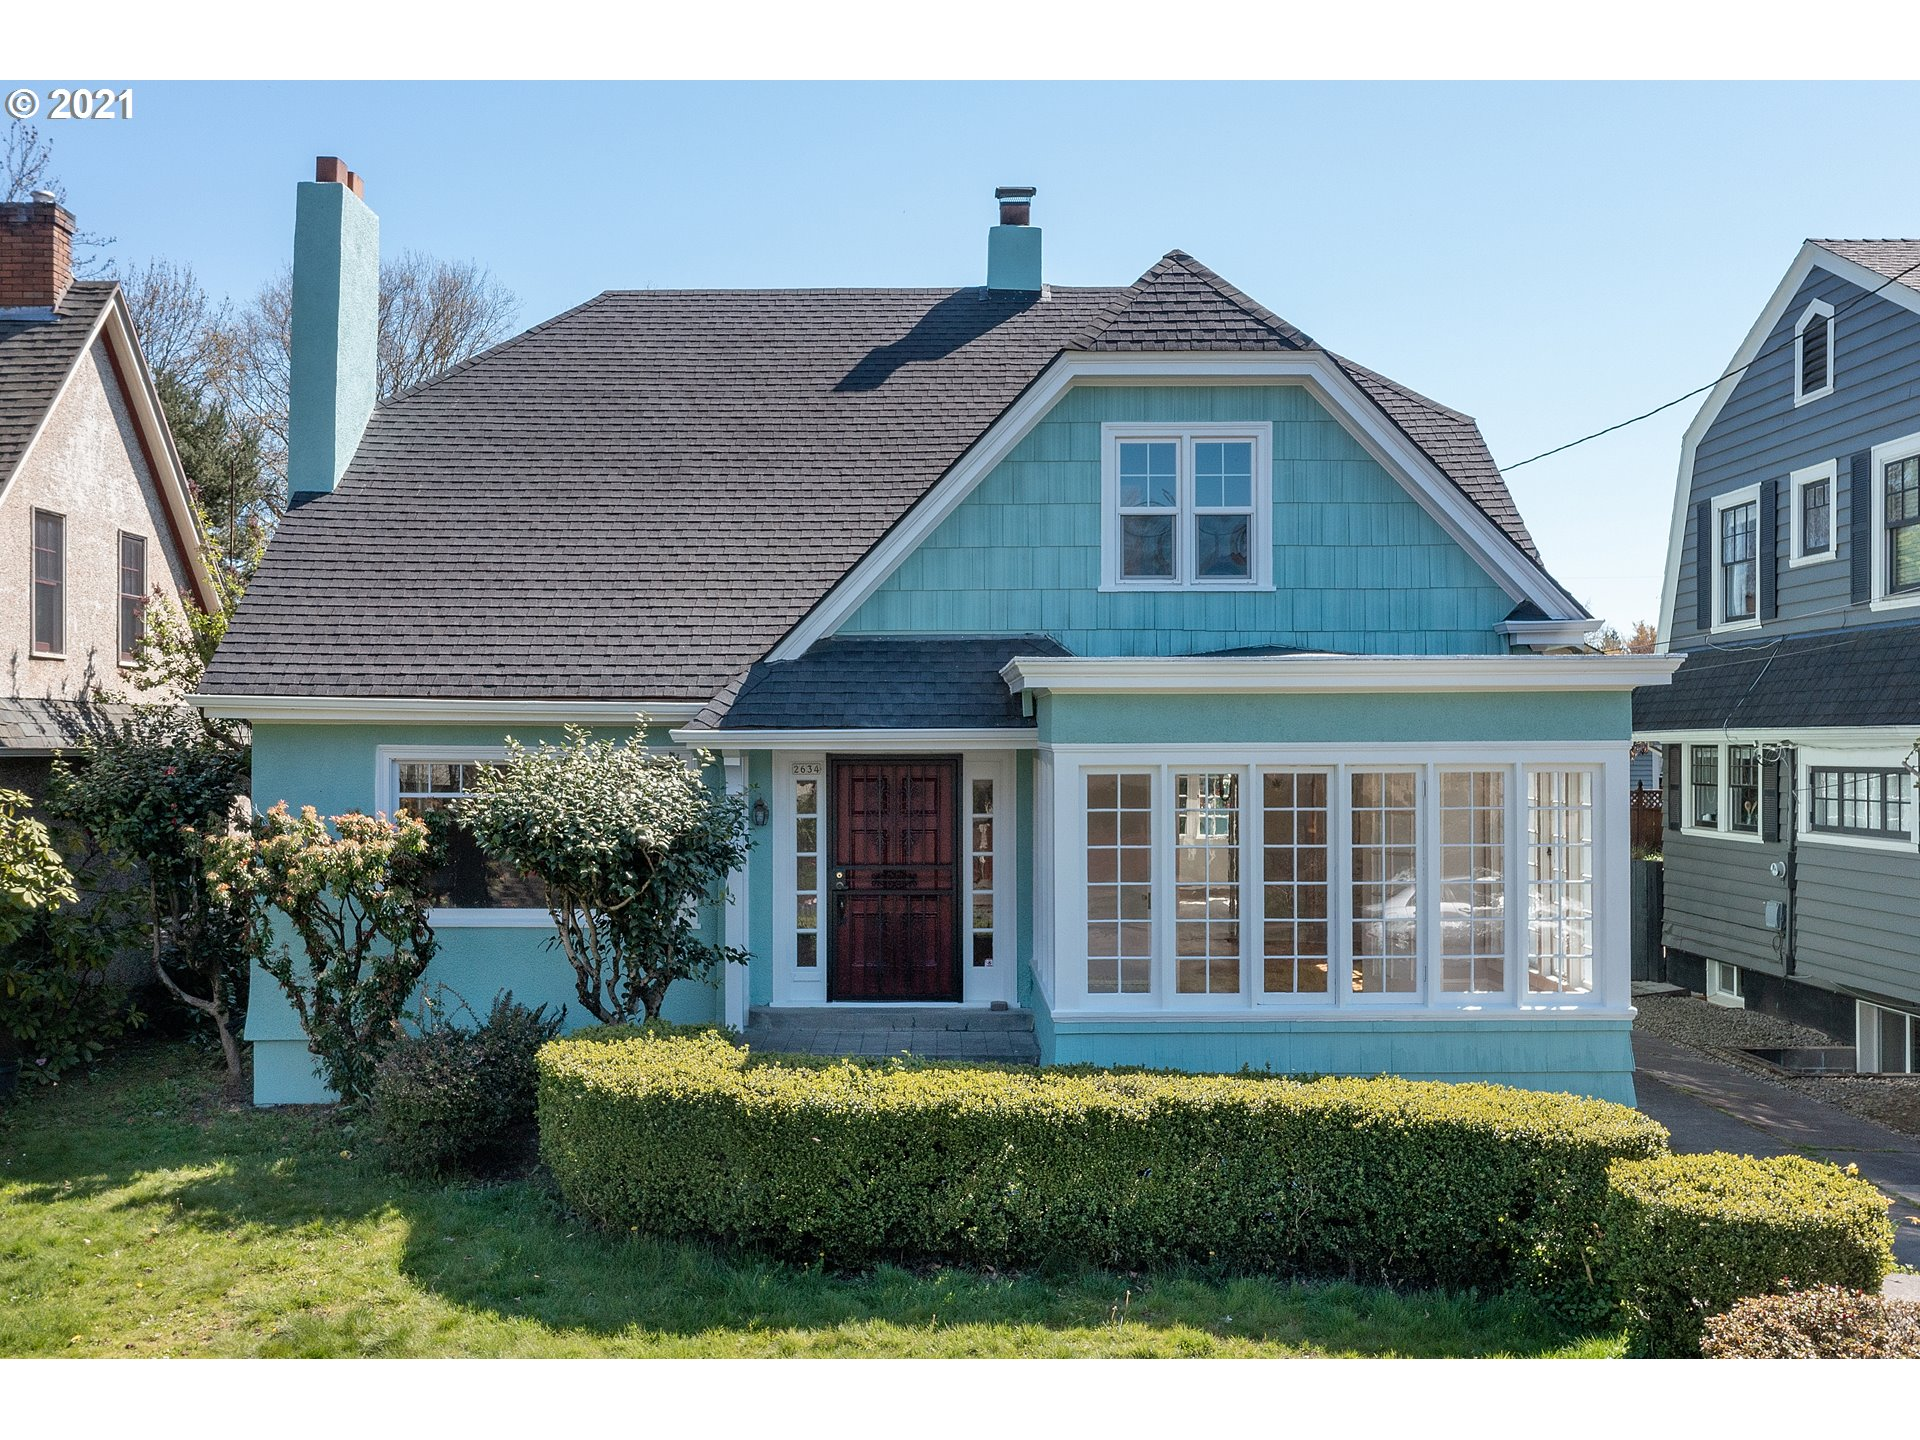 """Fantastic Irvington beauty. Family treasure, 1st time available since early 30's. Orig/period details remain incl moldings, panel doors, built-ins, mullion wood windows, 2"""" oak floors, lighting, tile work, cabinetry, fixtures, laundry chute, clawfoot, more. Lrg LR has tile surround at FP w/mantle & surround. Formal DR w/French doors to glass sunroom. Main floor BR. Sitting room/den off upper BR. 25K+ in new int/ext restoration/paint. Rep thinks roof/furnace apprx 10 or so yrs. THIS IS A BEAUTY!!"""